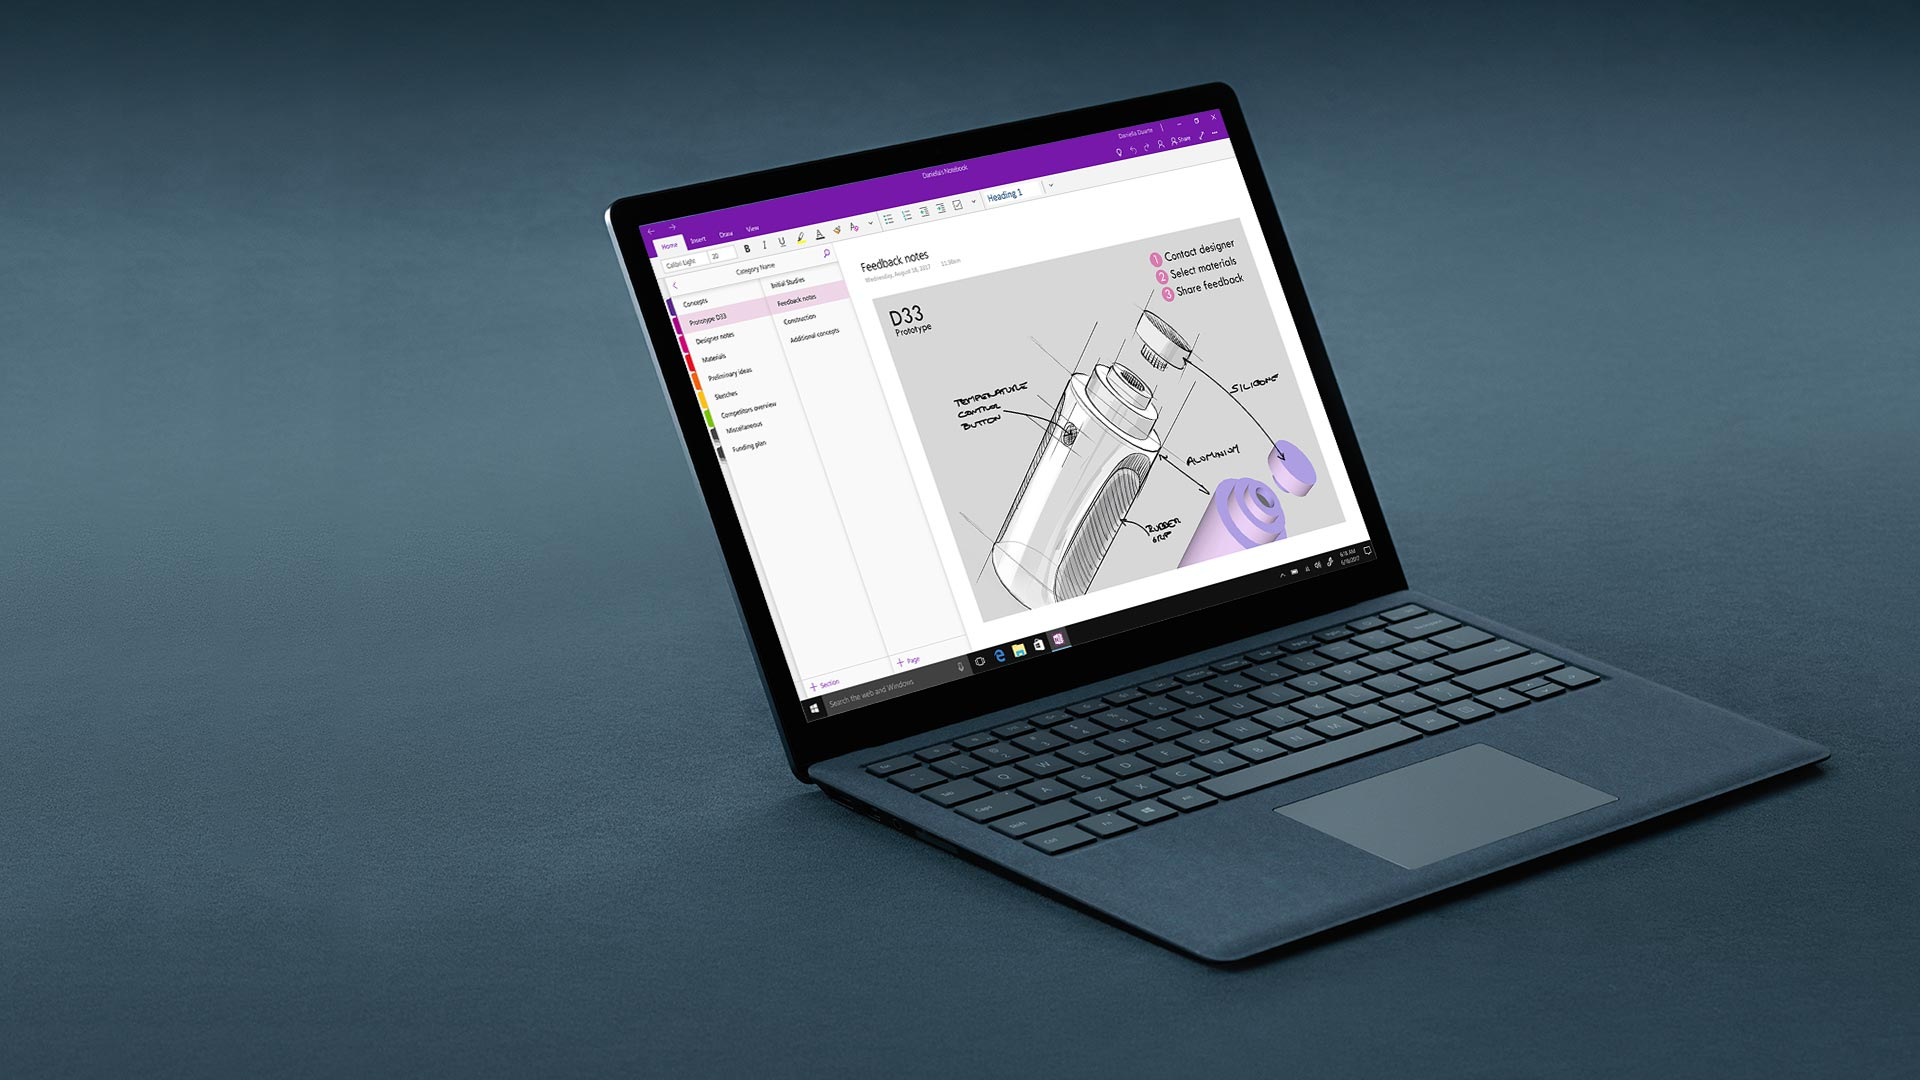 Kobaltblauwe Surface Laptop met One Note-scherm.